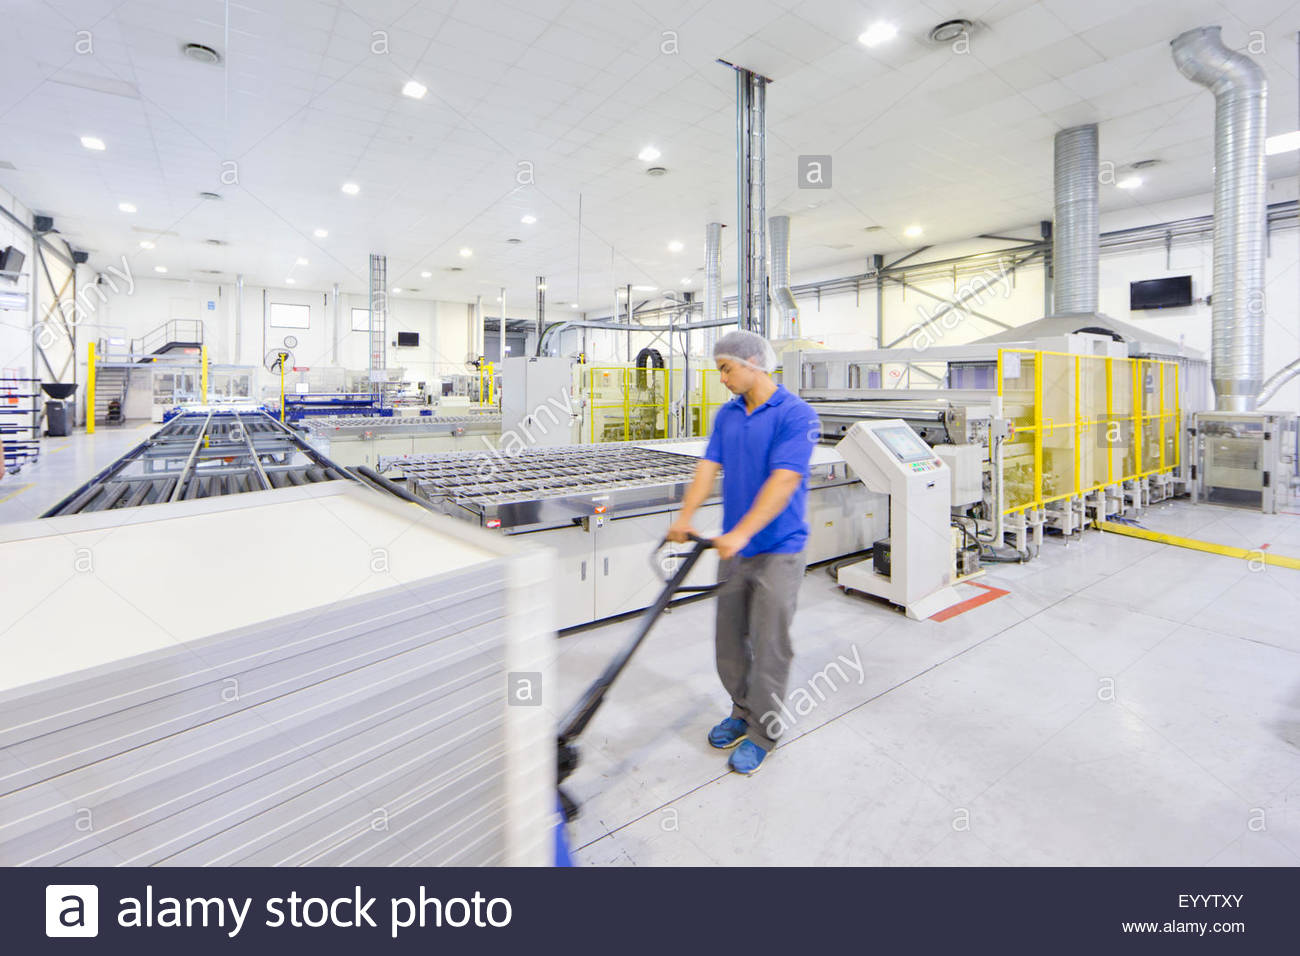 Worker pulling pallet of solar panels on factory floor - Stock Image